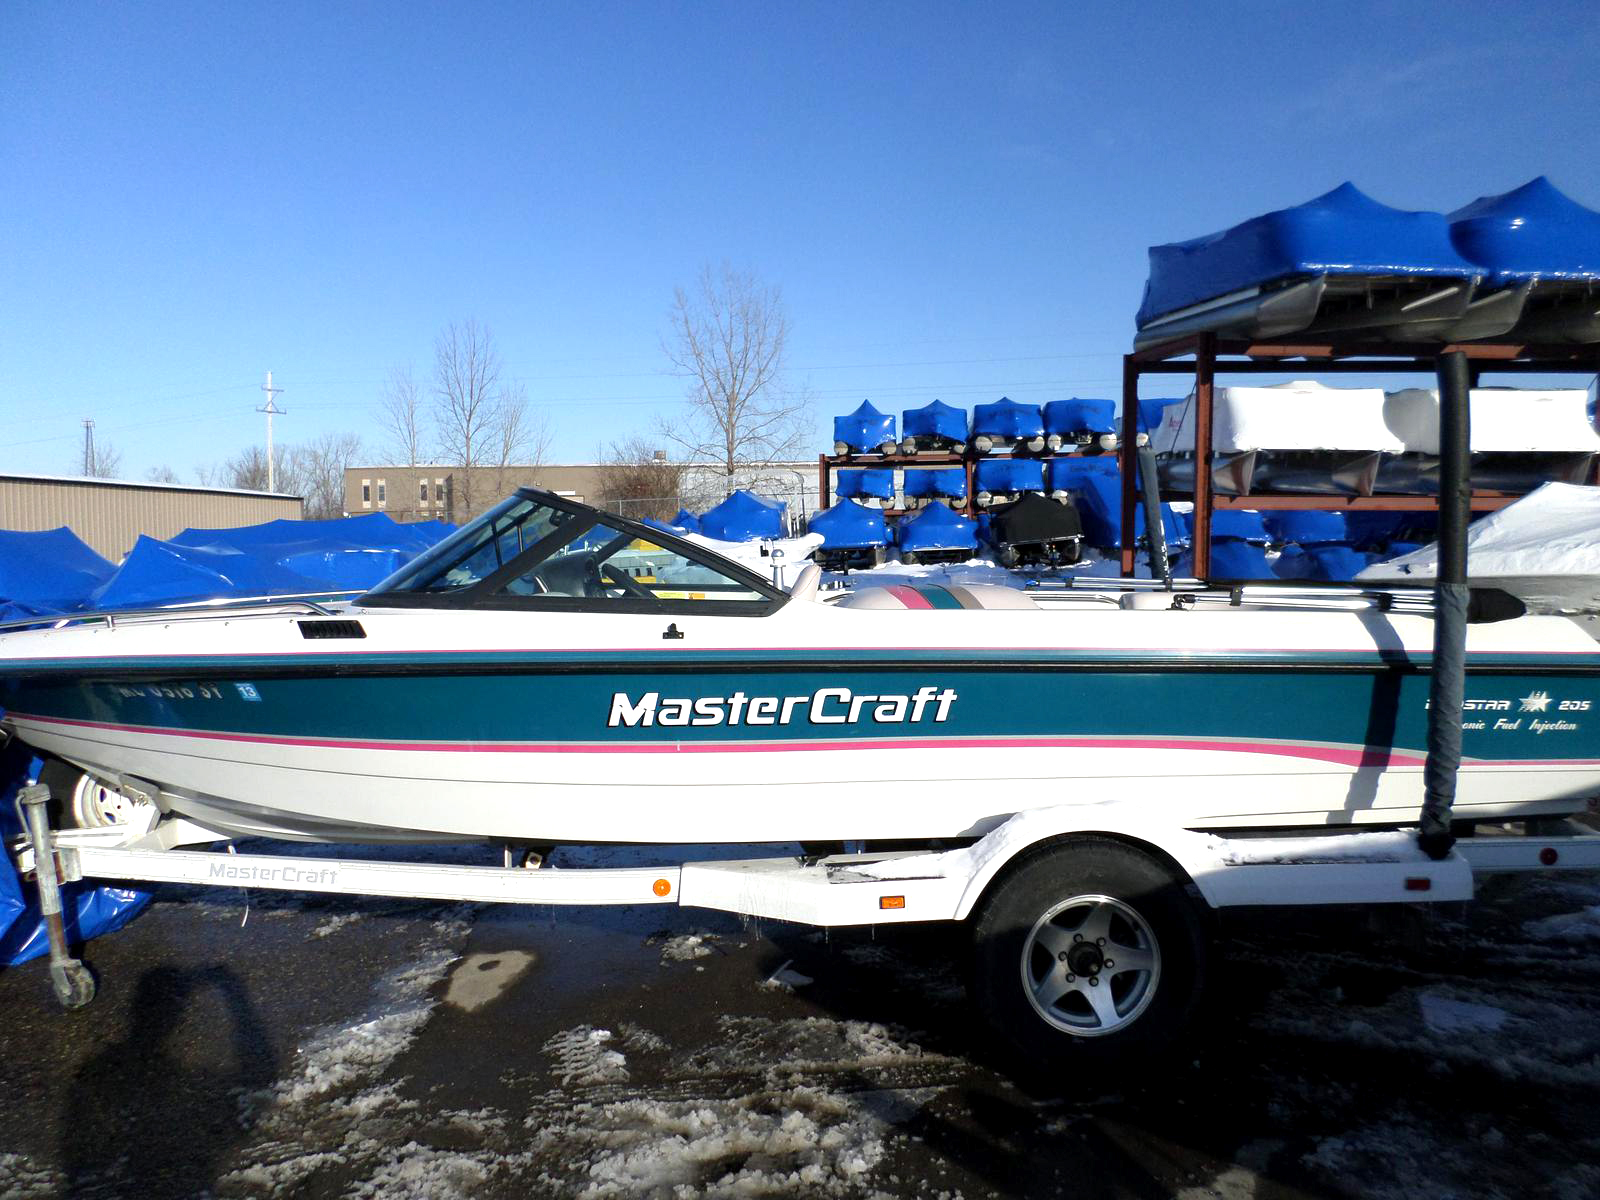 1994 MASTERCRAFT Prostar 205 9368 20 full cover bimini top trailer included 10995